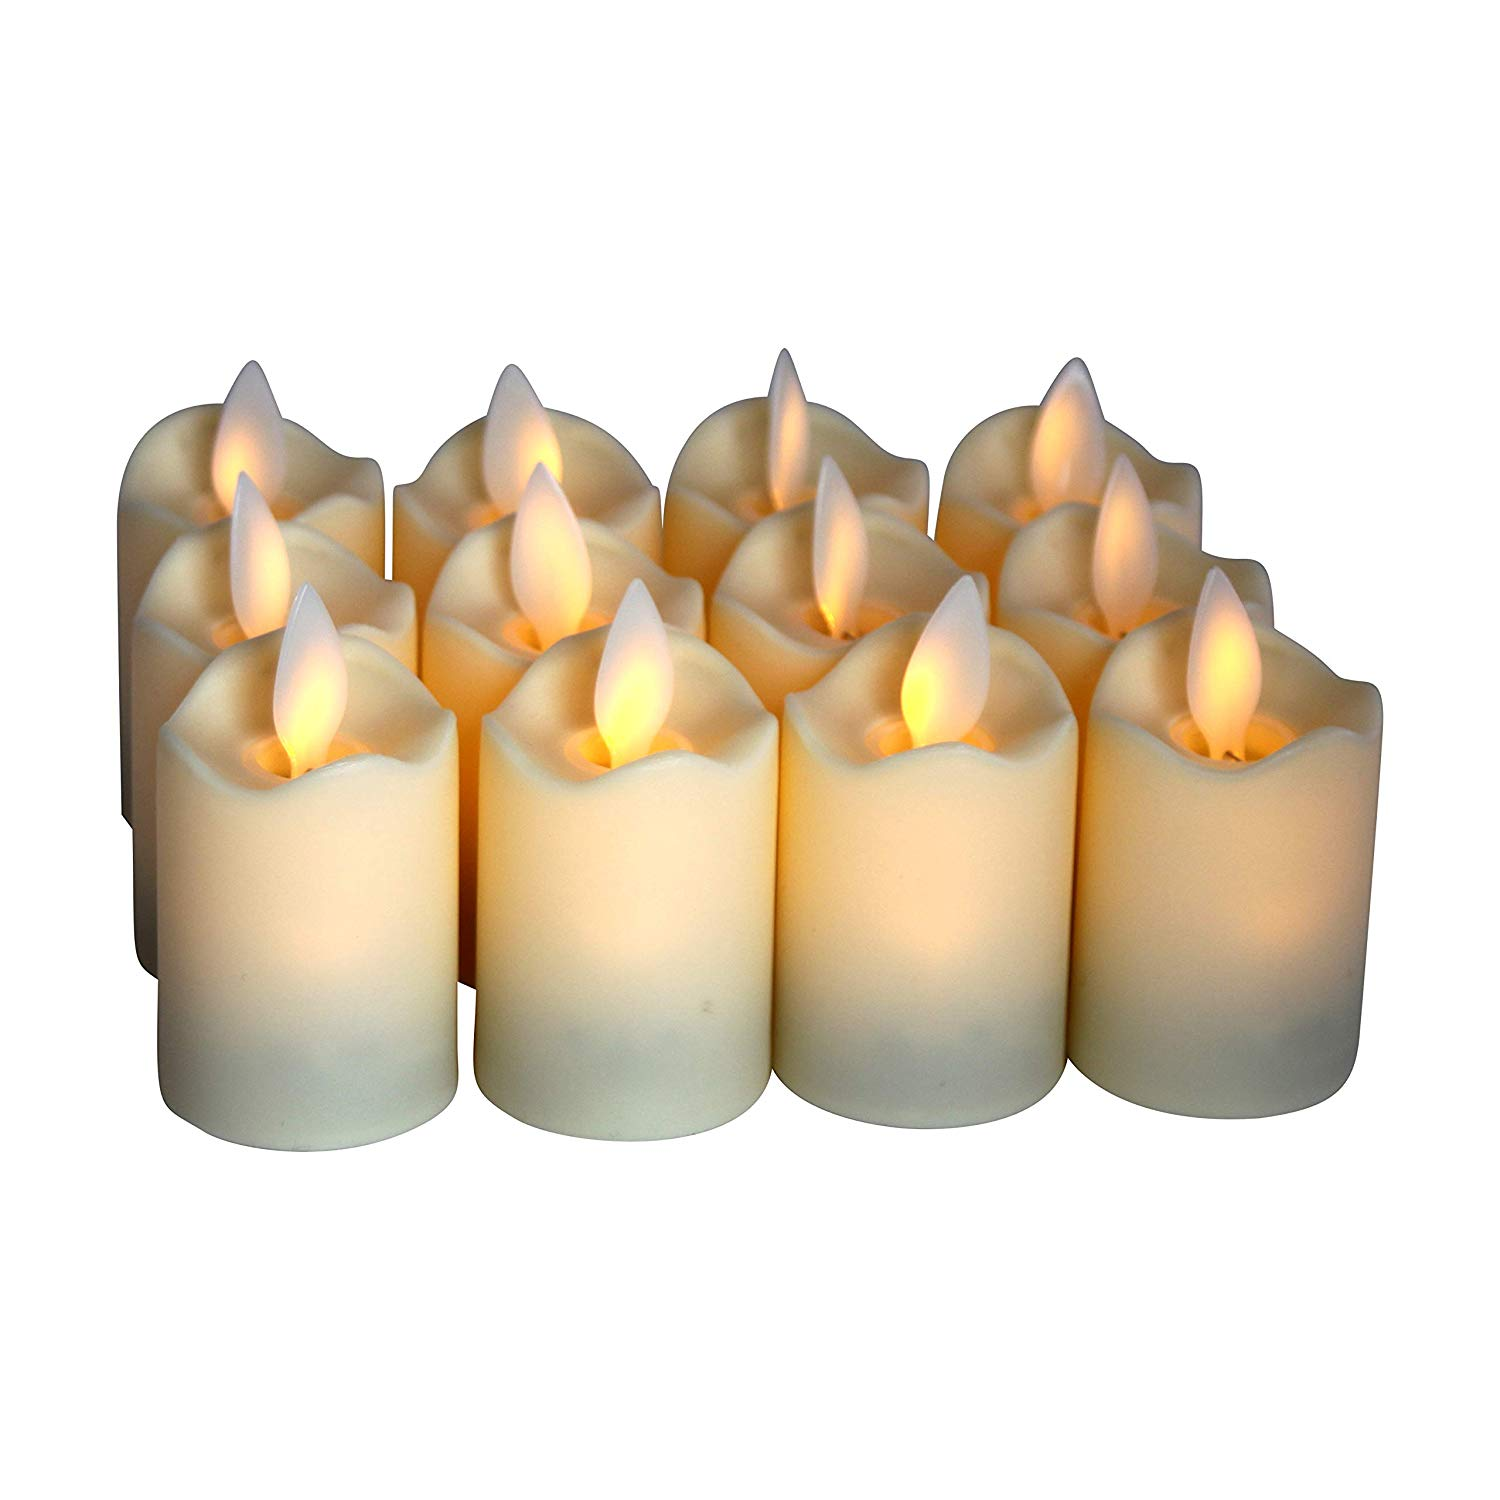 04f79bb2d6 Get Quotations · Flameless Candles - LED Votive Tea Lights - Flickering  Dancing Flame - Battery Operated - Non